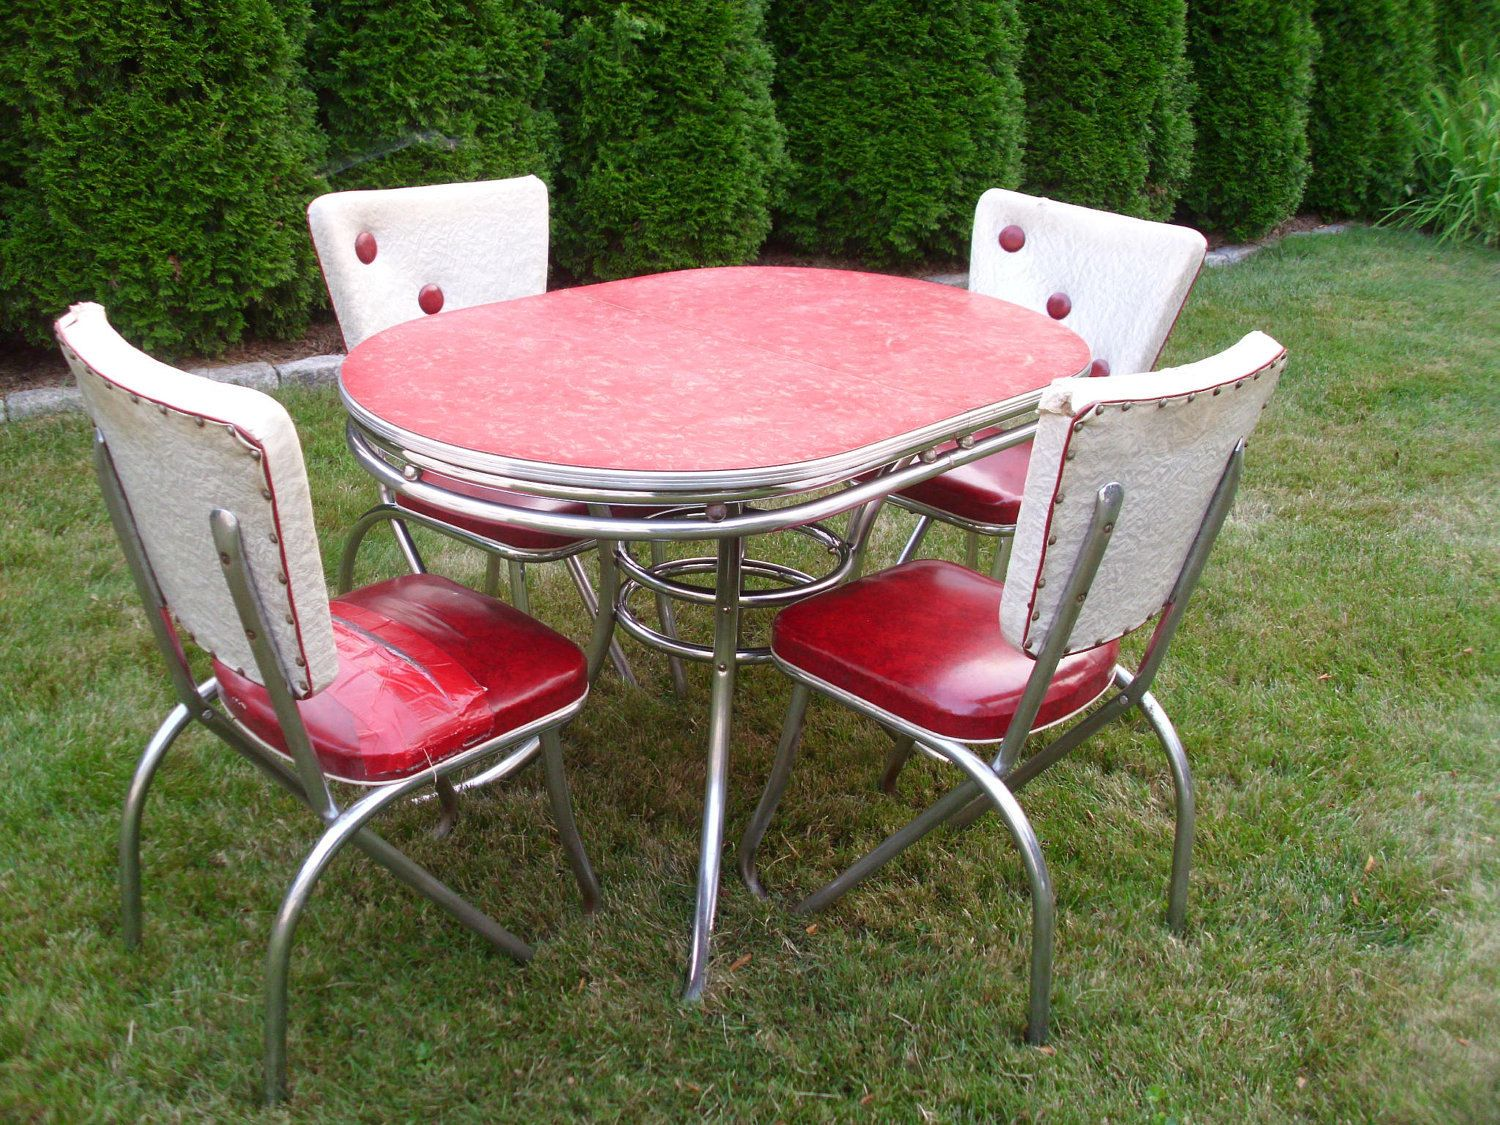 Retro 1950 kitchen chairs vintage 1950s kitchen table chairs by 4theloveofvintage on etsy